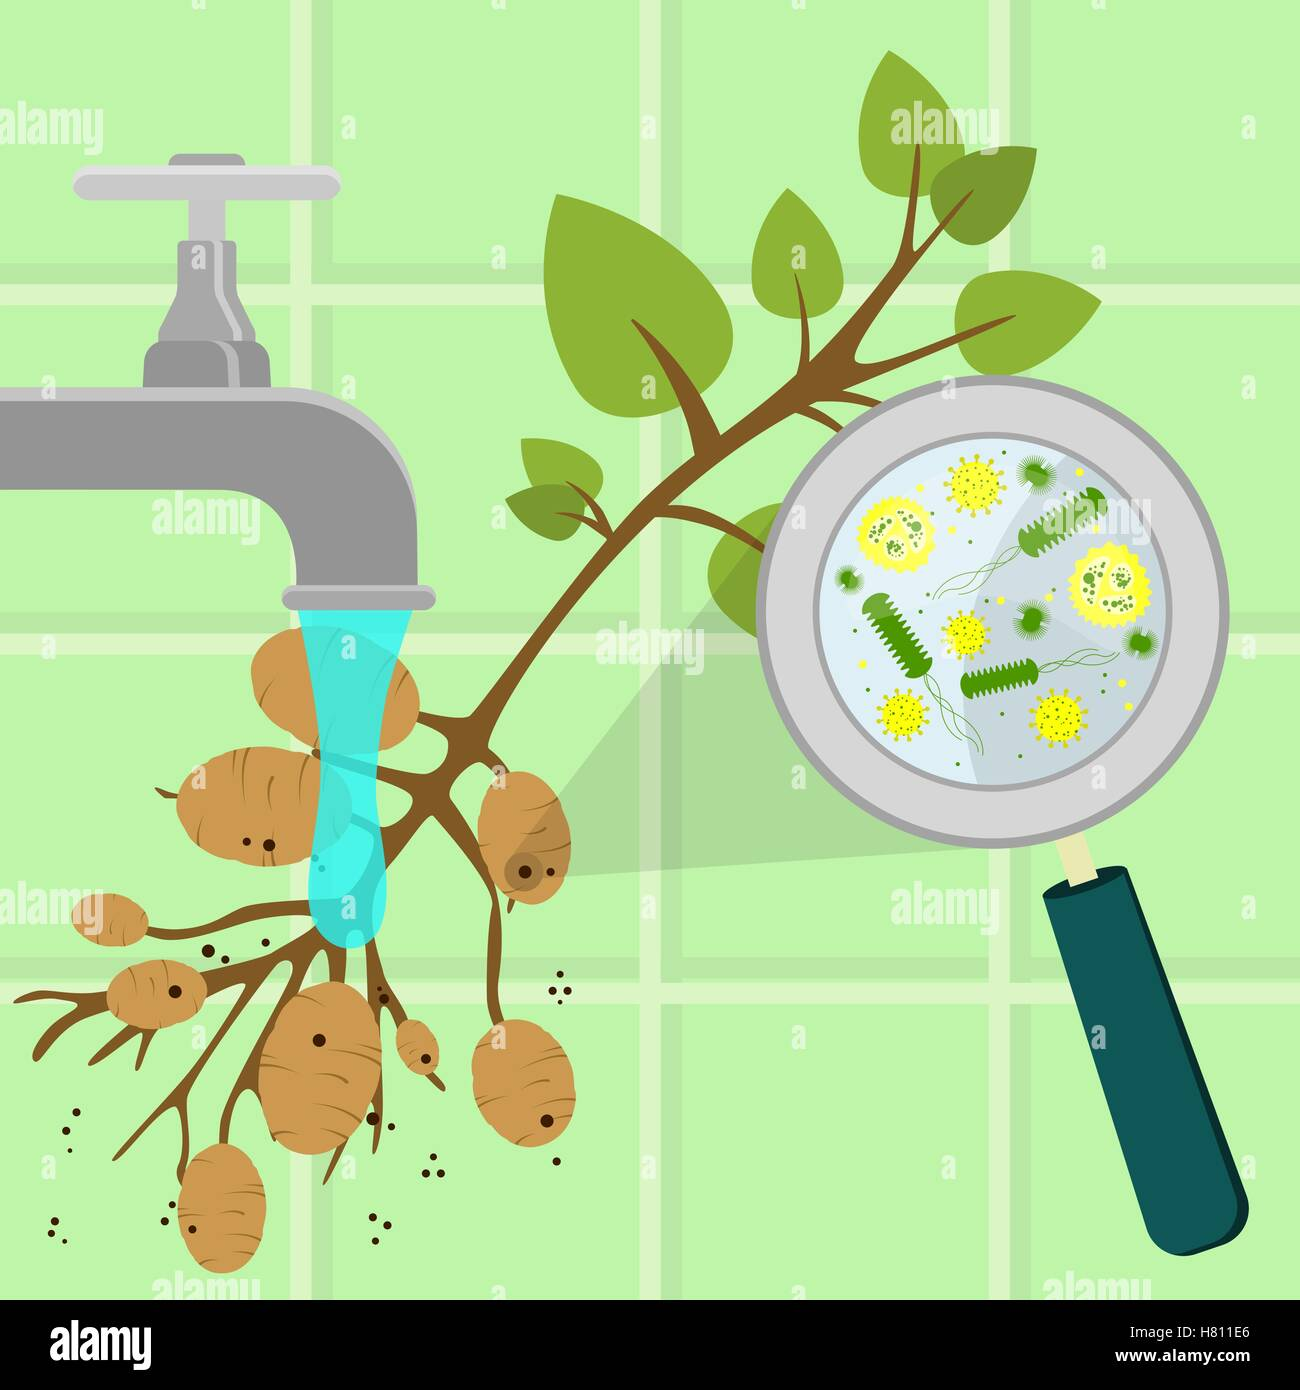 Contaminated potato tree being cleaned and washed in a kitchen. Microorganisms, virus and bacteria in the vegetable - Stock Image